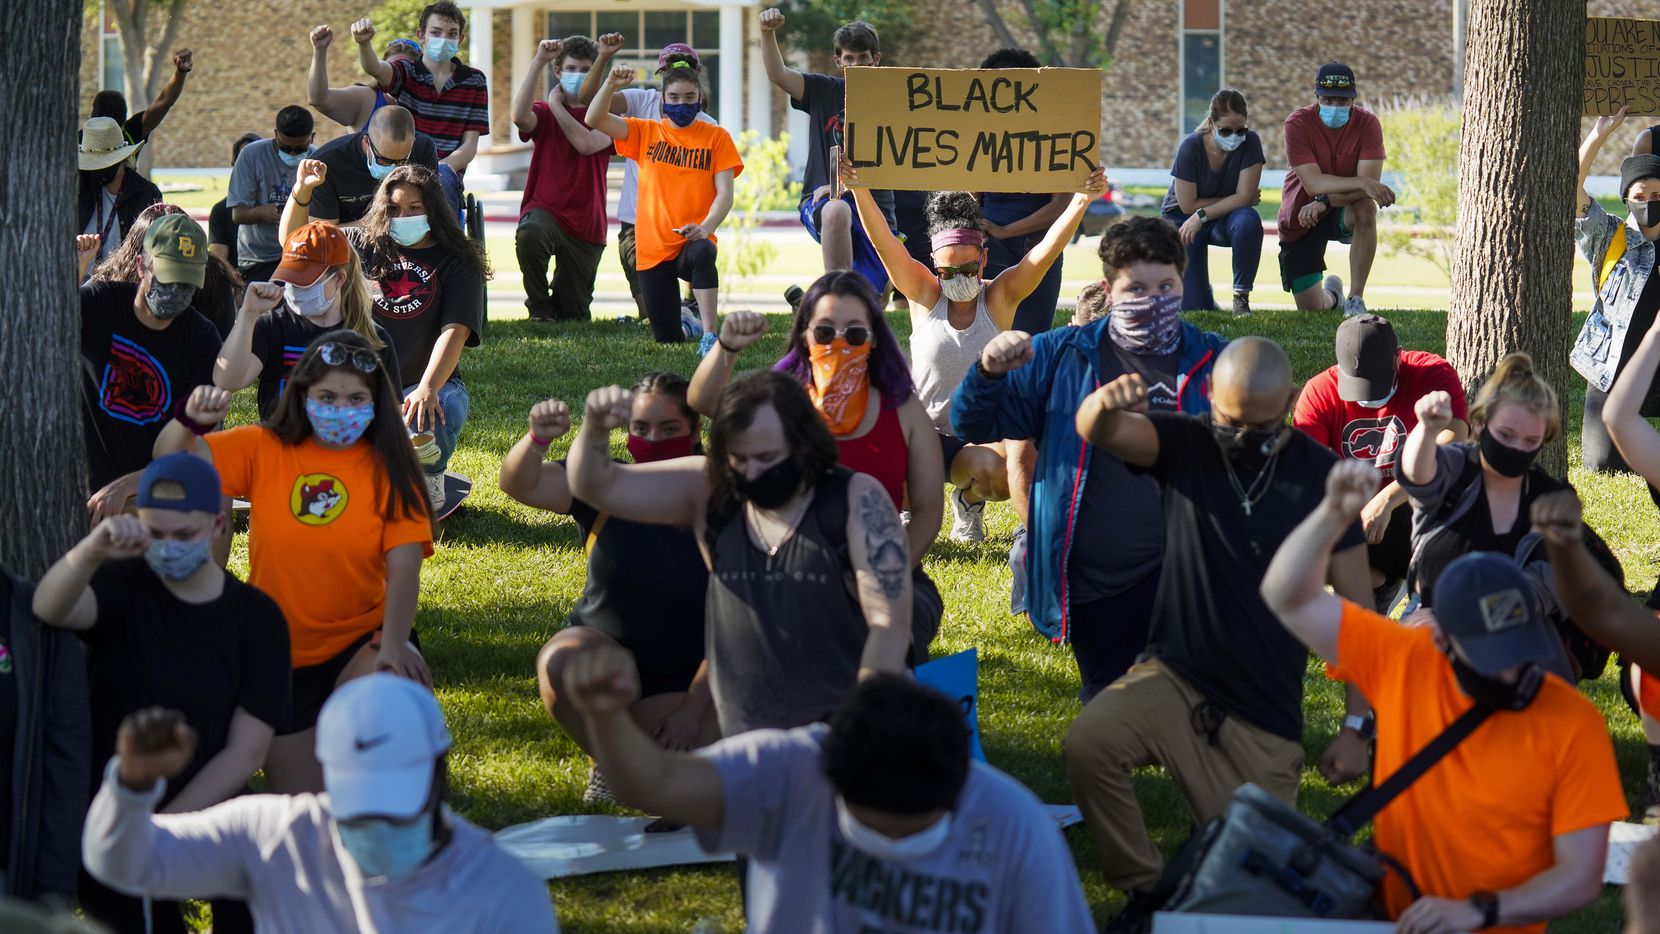 Demonstrators take a knee for 8 minutes and 46 seconds during a protest organized by Berkner High School students at Berner Park as protests continue after the death of George Floyd on Wednesday, June 3, 2020, in Richardson.